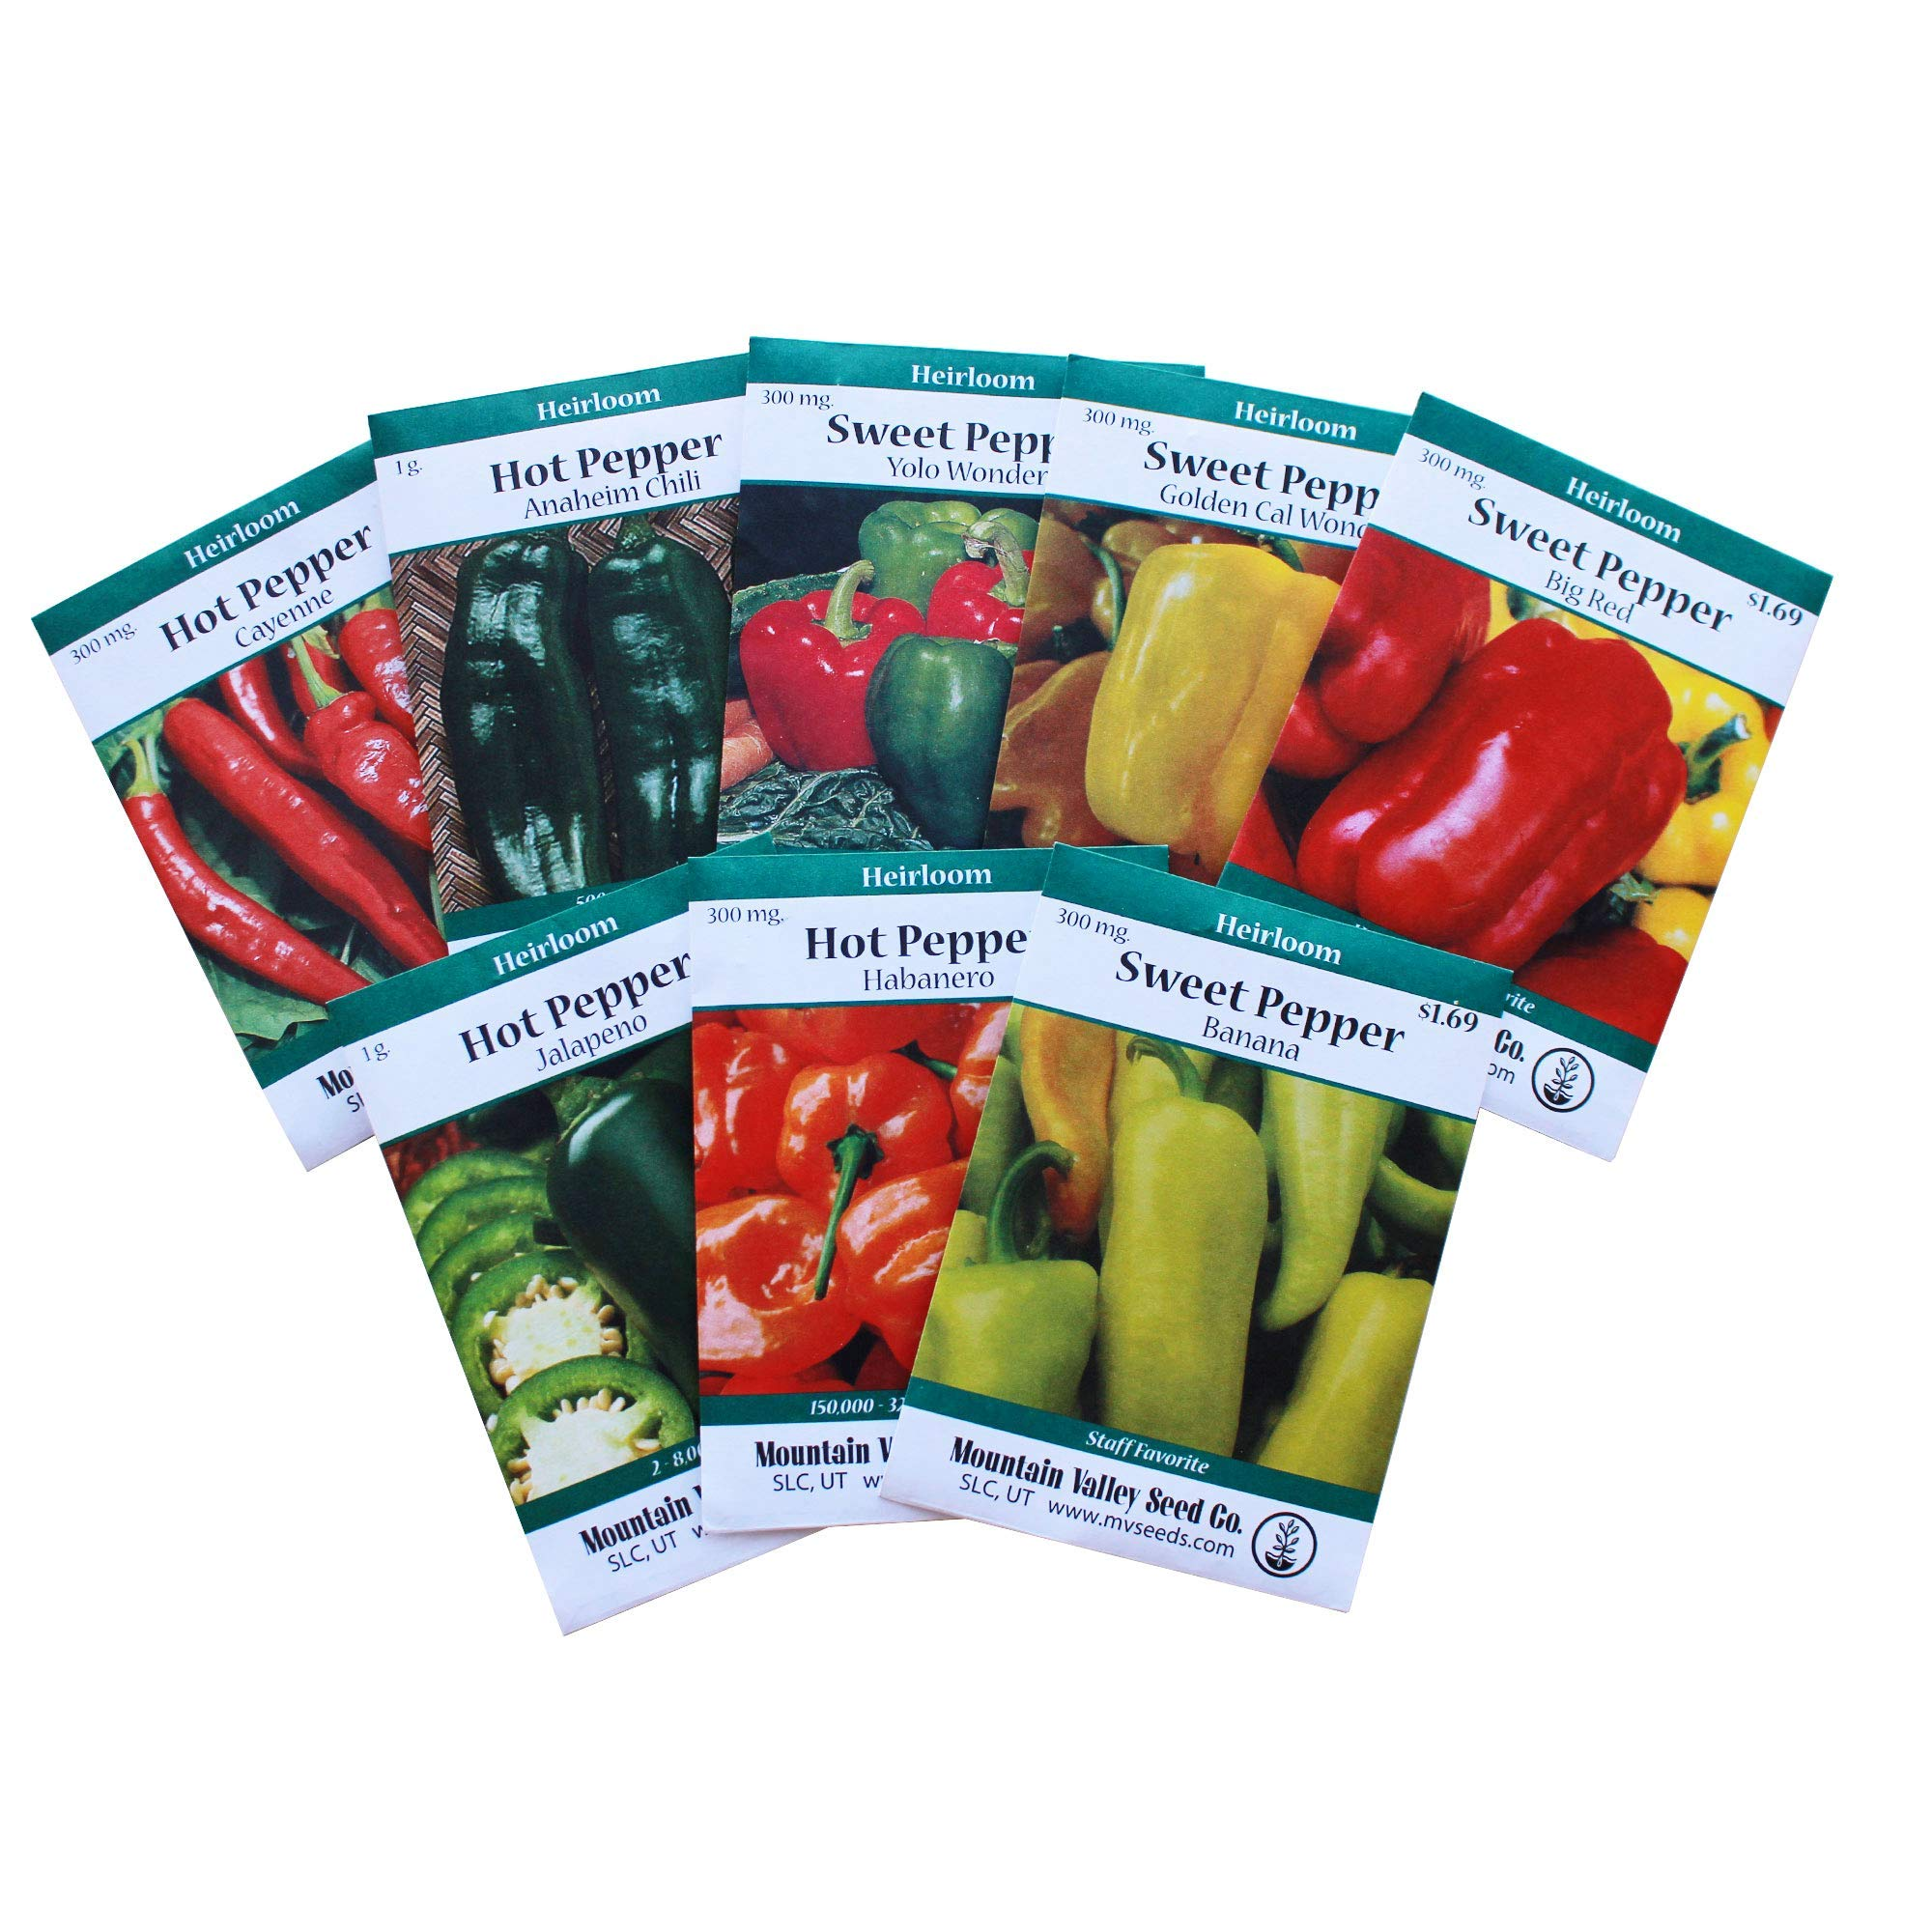 Heirloom Sweet & Hot Pepper Garden Seed Collection - Non-GMO: 8 Varieties - Big Red, Anaheim Chili, Habanero, Jalapeno, Cayenne, More by Mountain Valley Seed Company